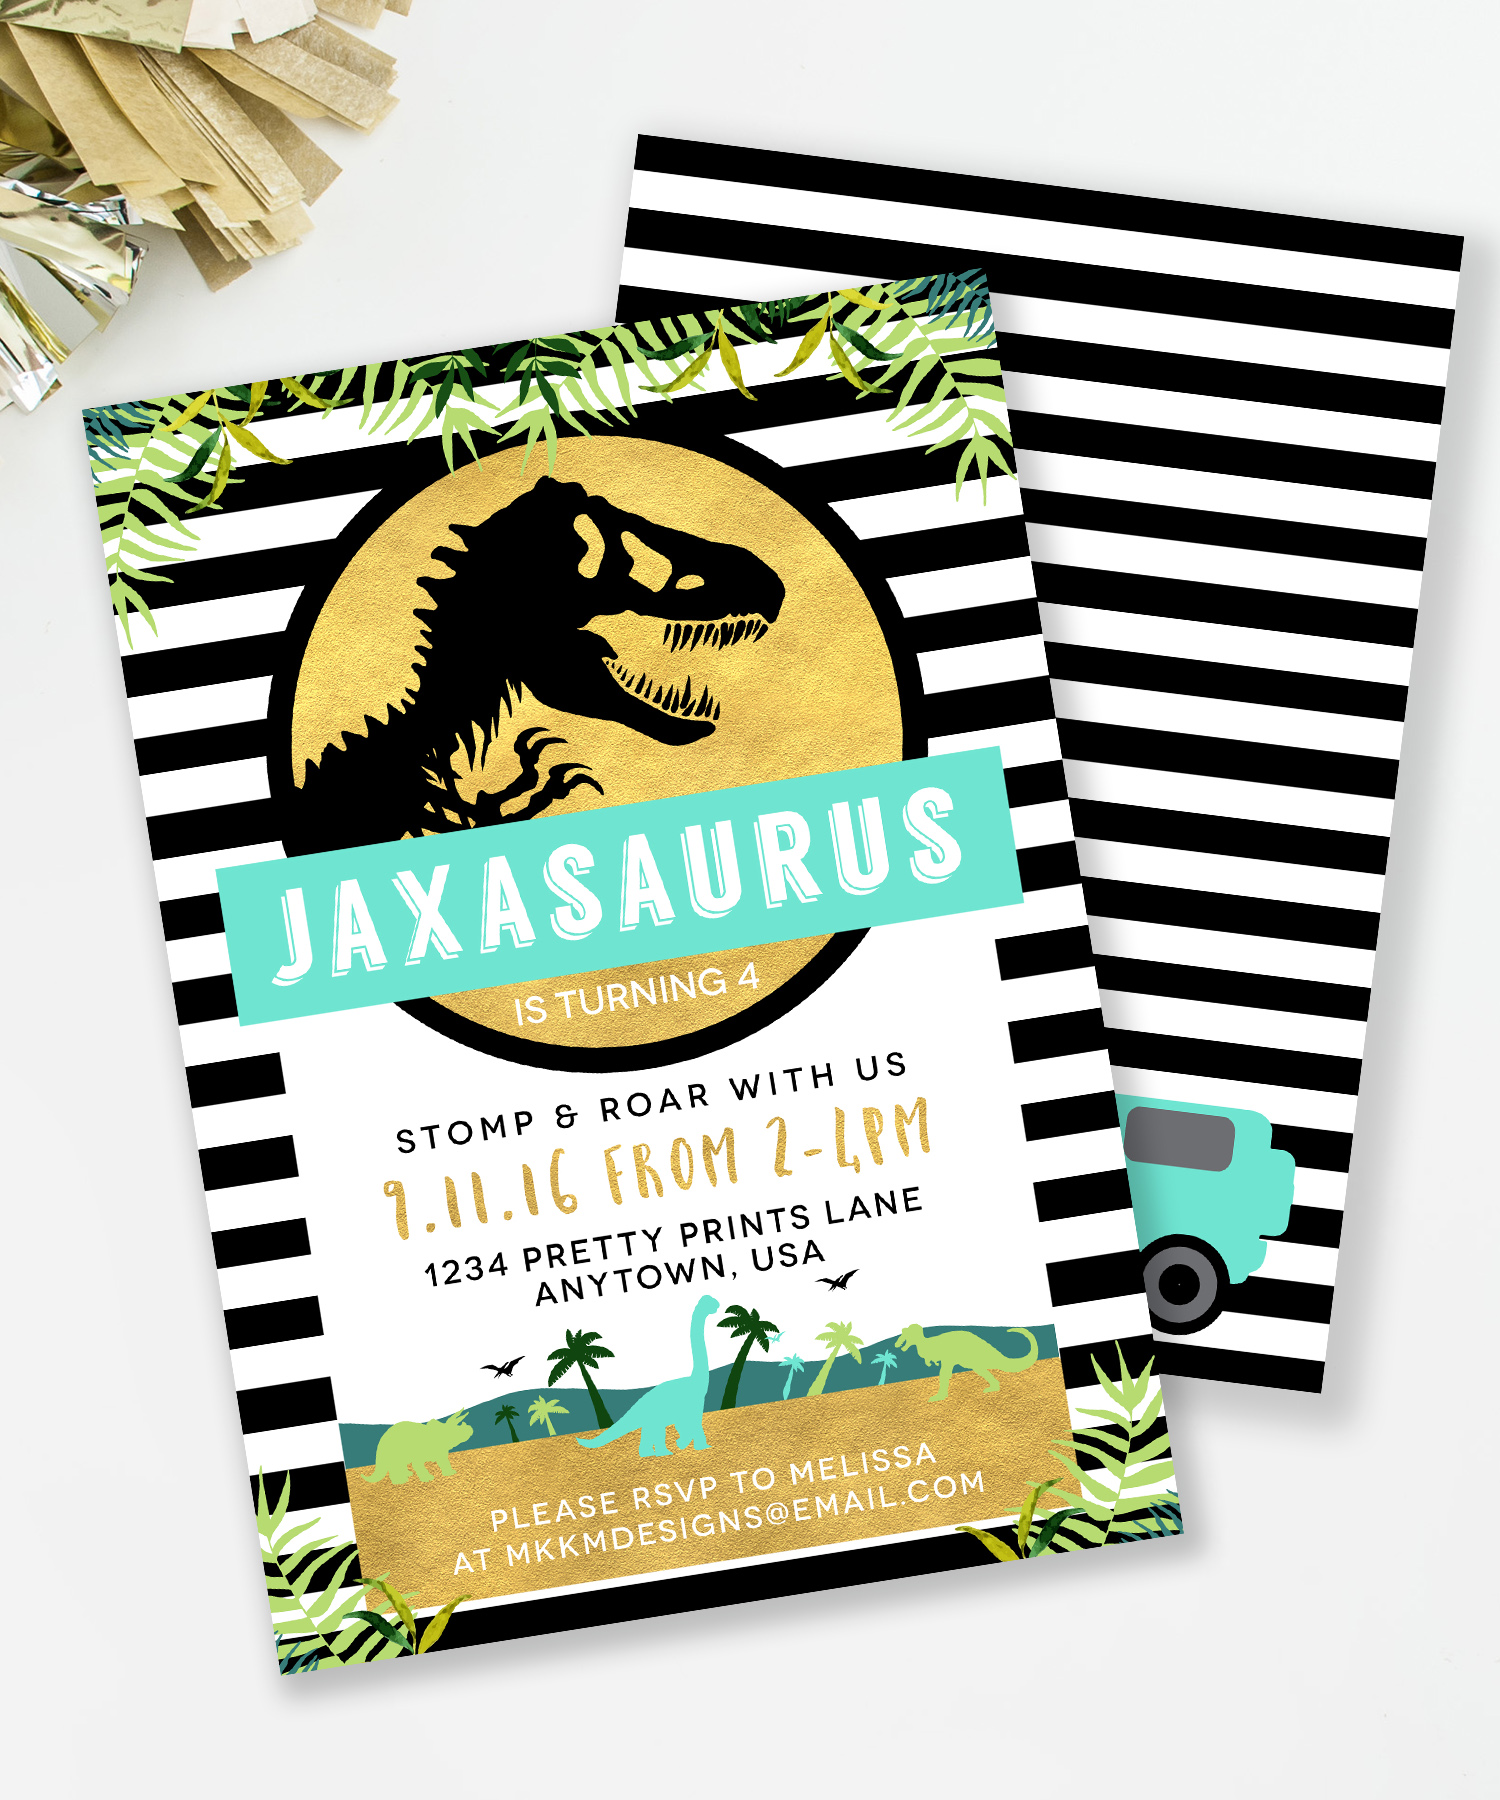 Jurassic Park Dinosaur Invitation by MKKM Designs. These black and gold, botanical themed, invitations are perfect for a Dino party that's unique.